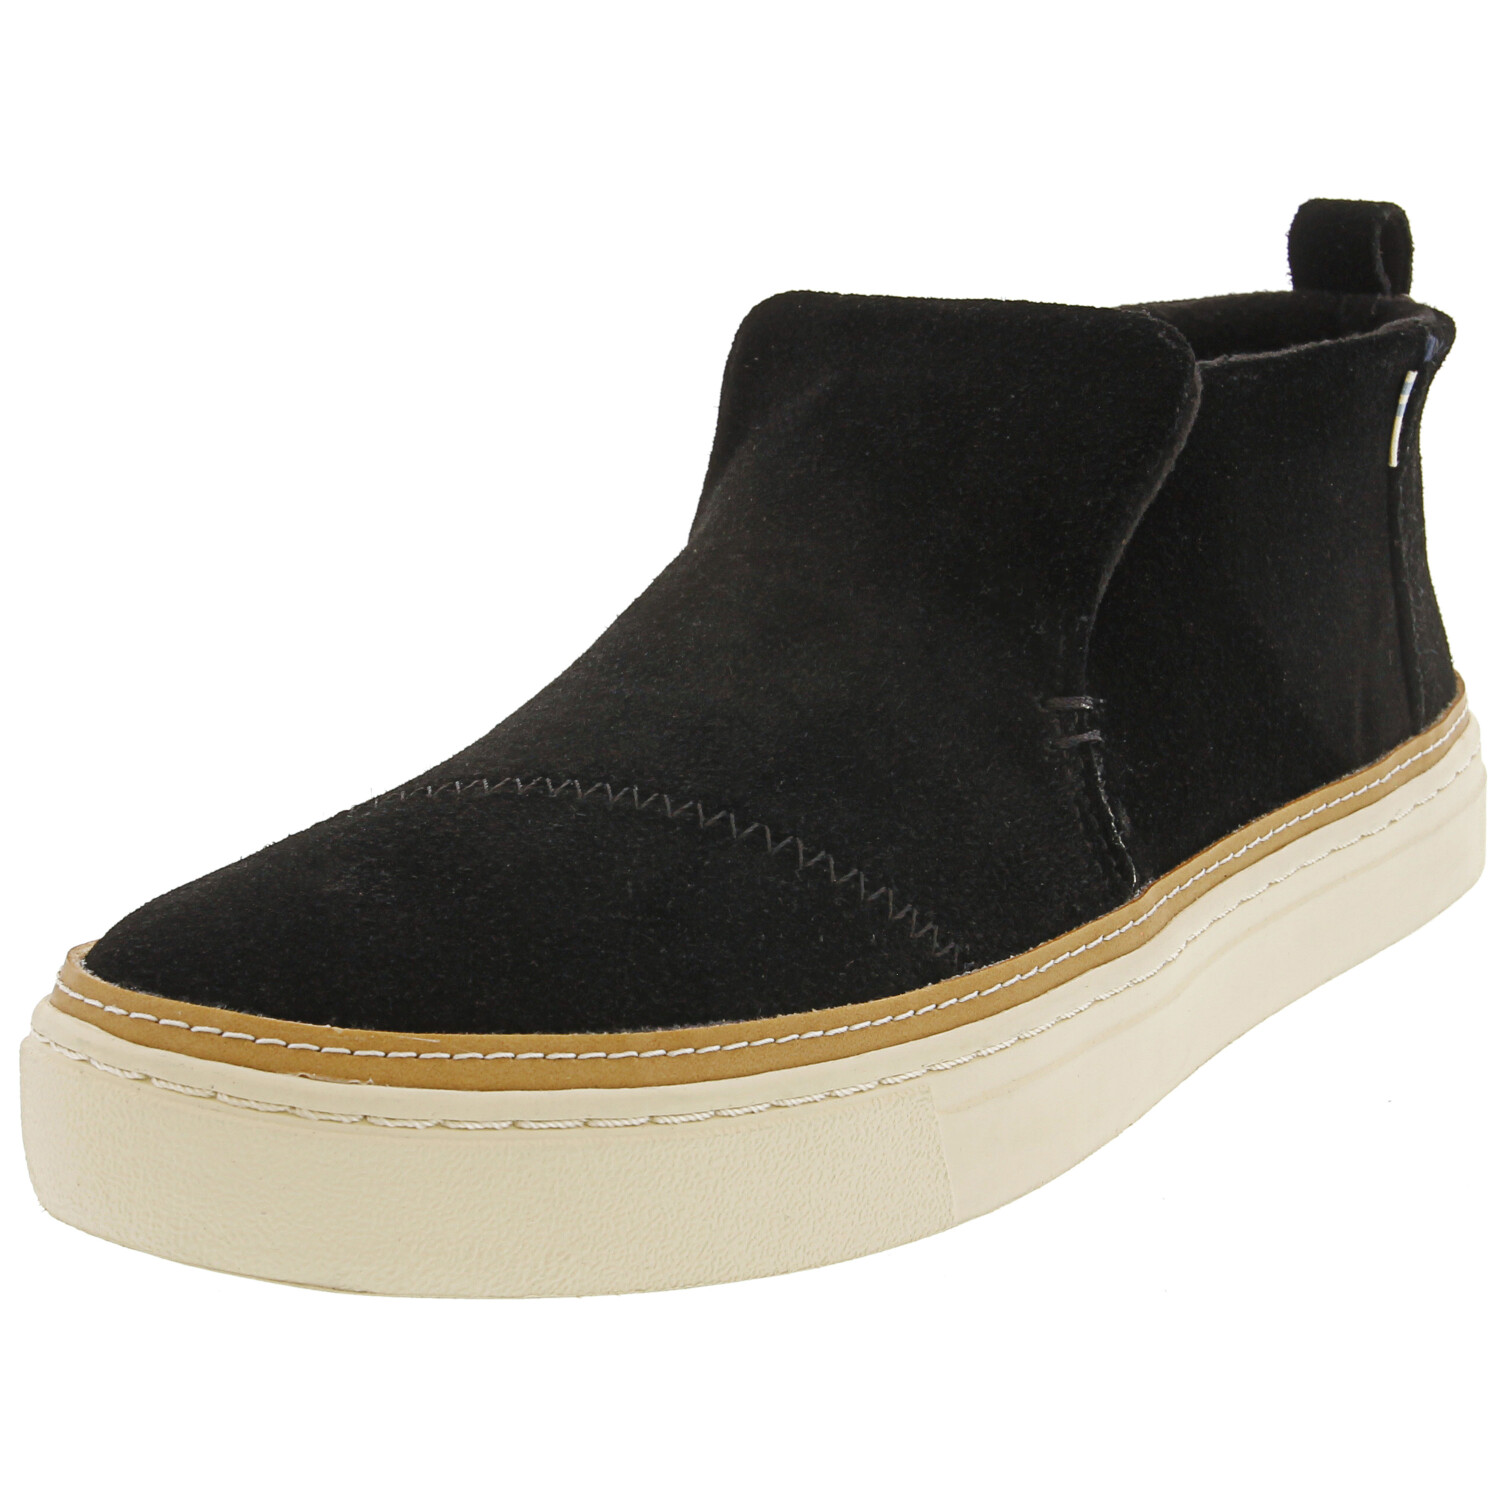 Toms Women's Paxton Suede Black Ankle-High Slip-On Shoes - 6M